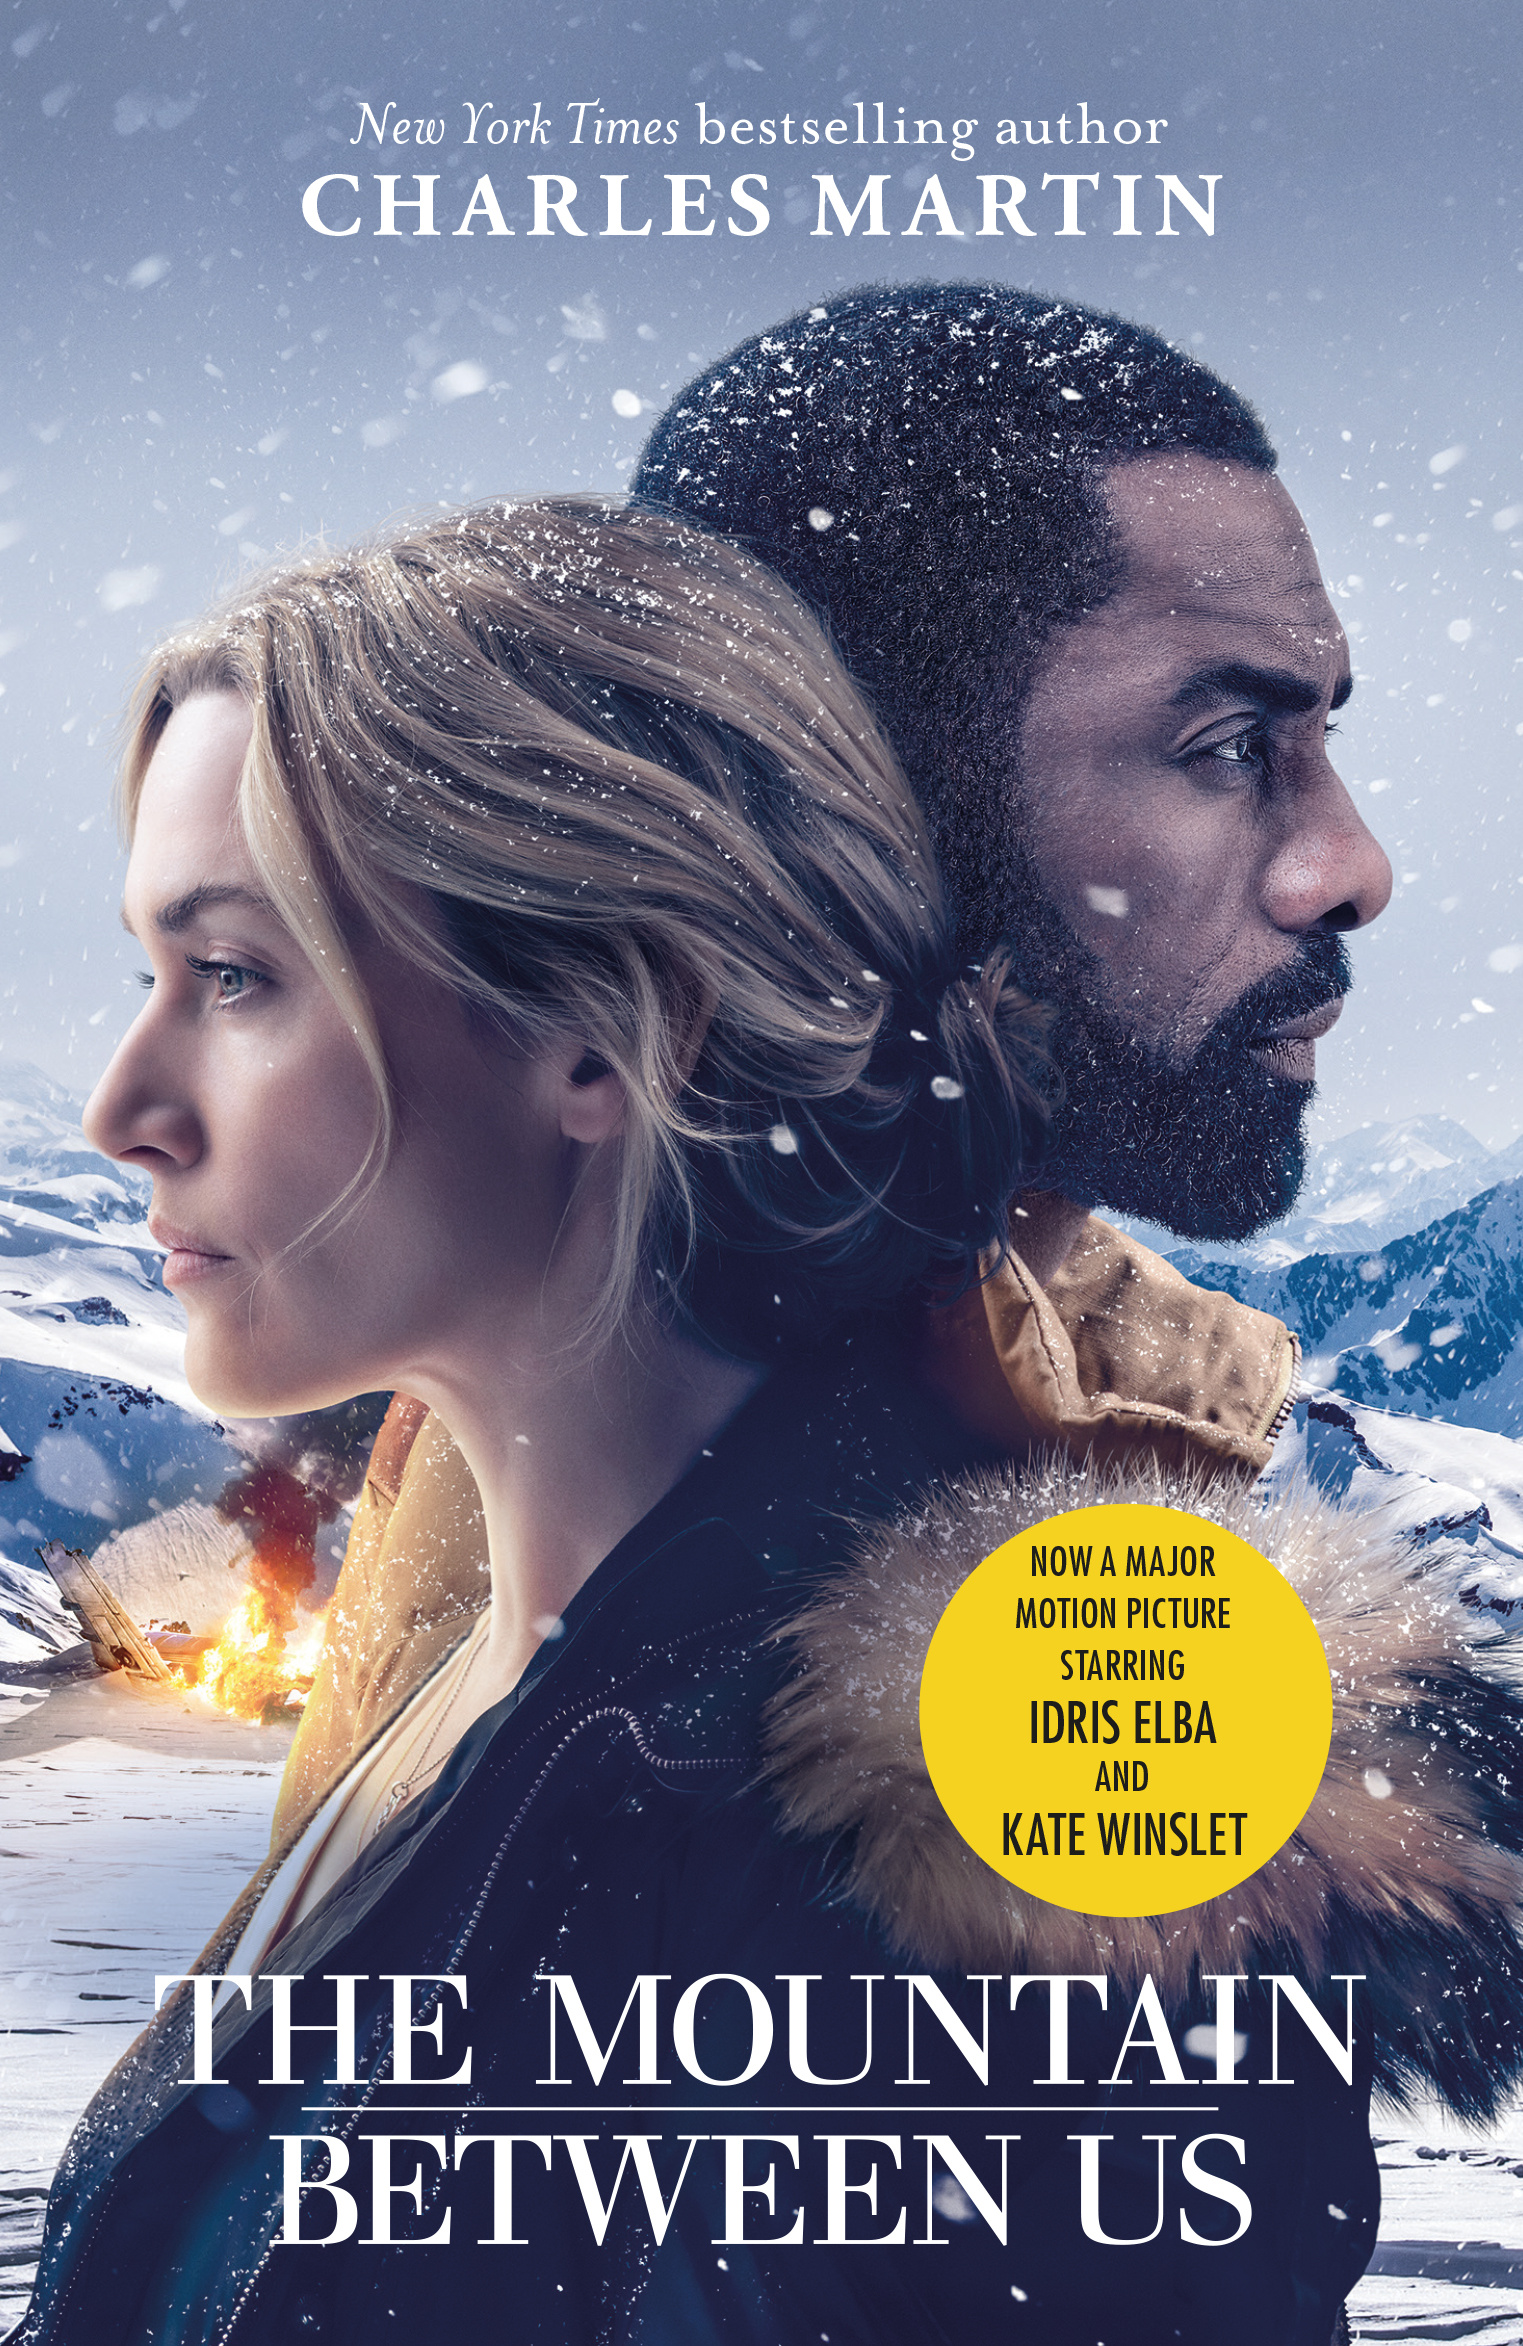 The Mountain Between Us: Now a major motion picture starring Idris Elba and Kate Winslet by Charles Martin, ISBN: 9781474606639